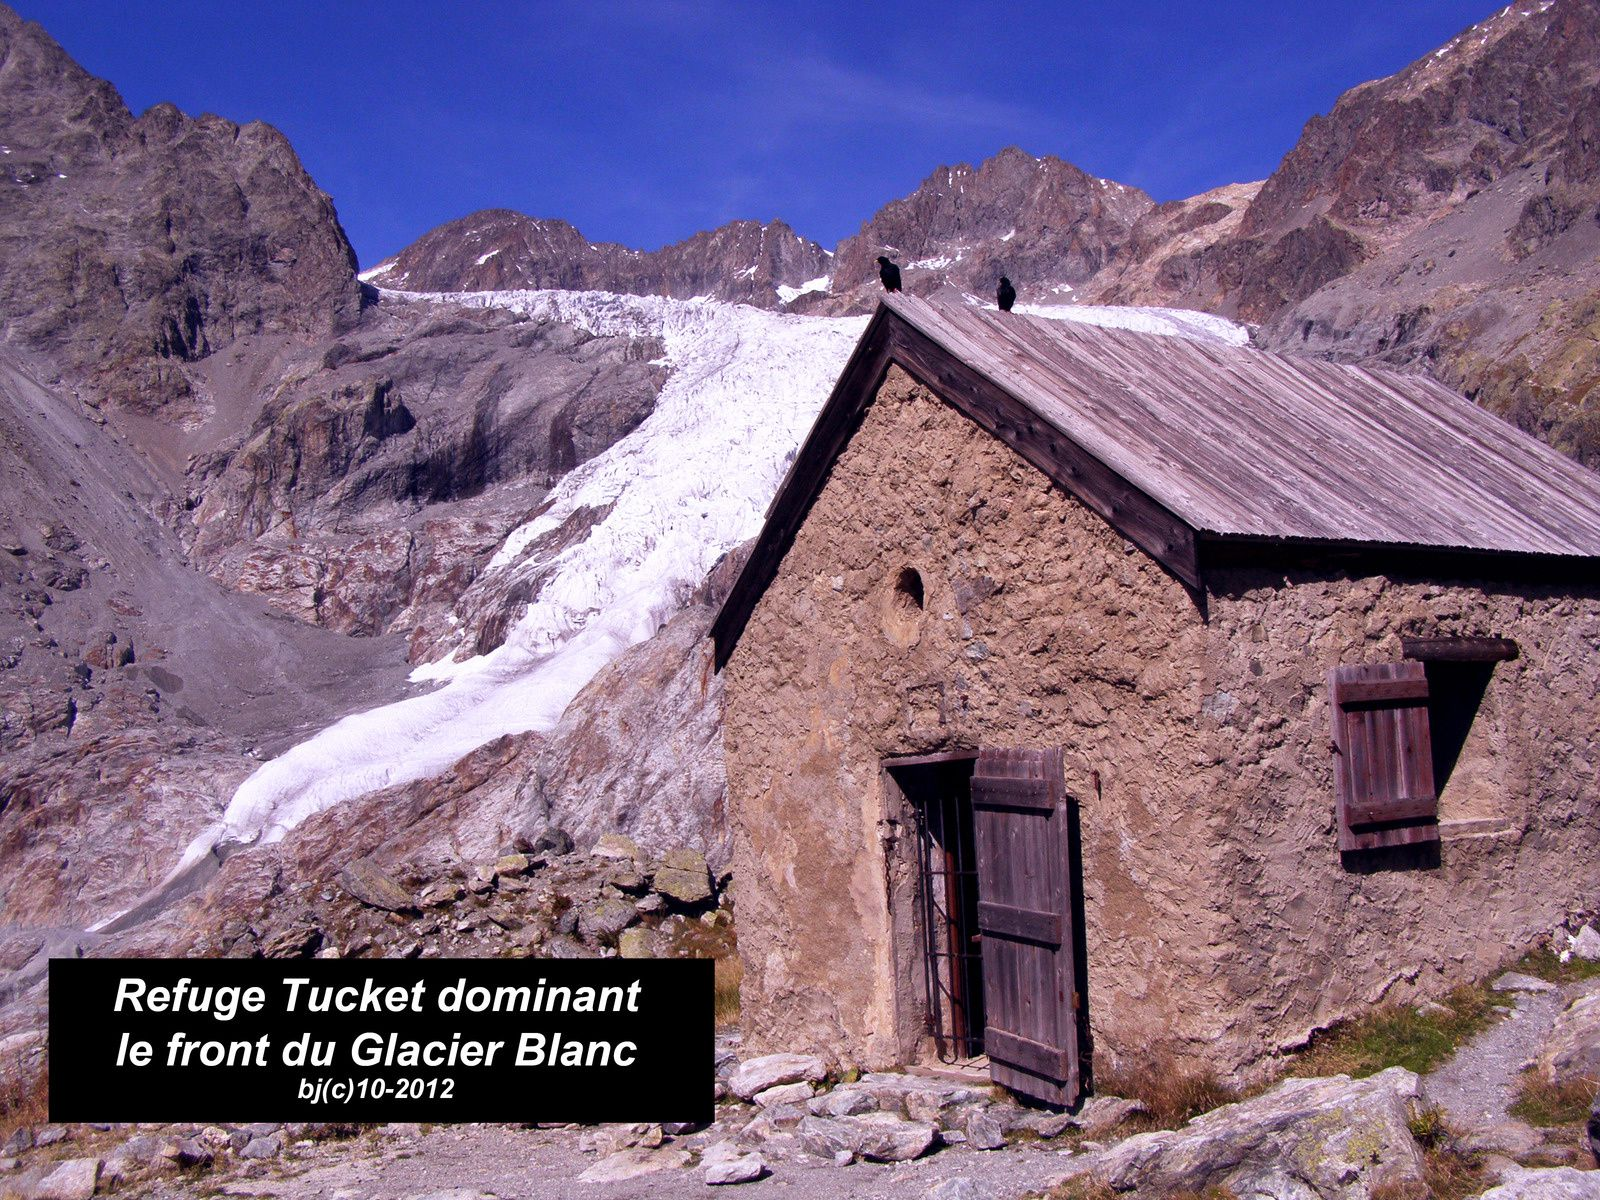 Ancien REFUGE TUCKETT - Glacier Blanc - photo BJ(C)09-2011